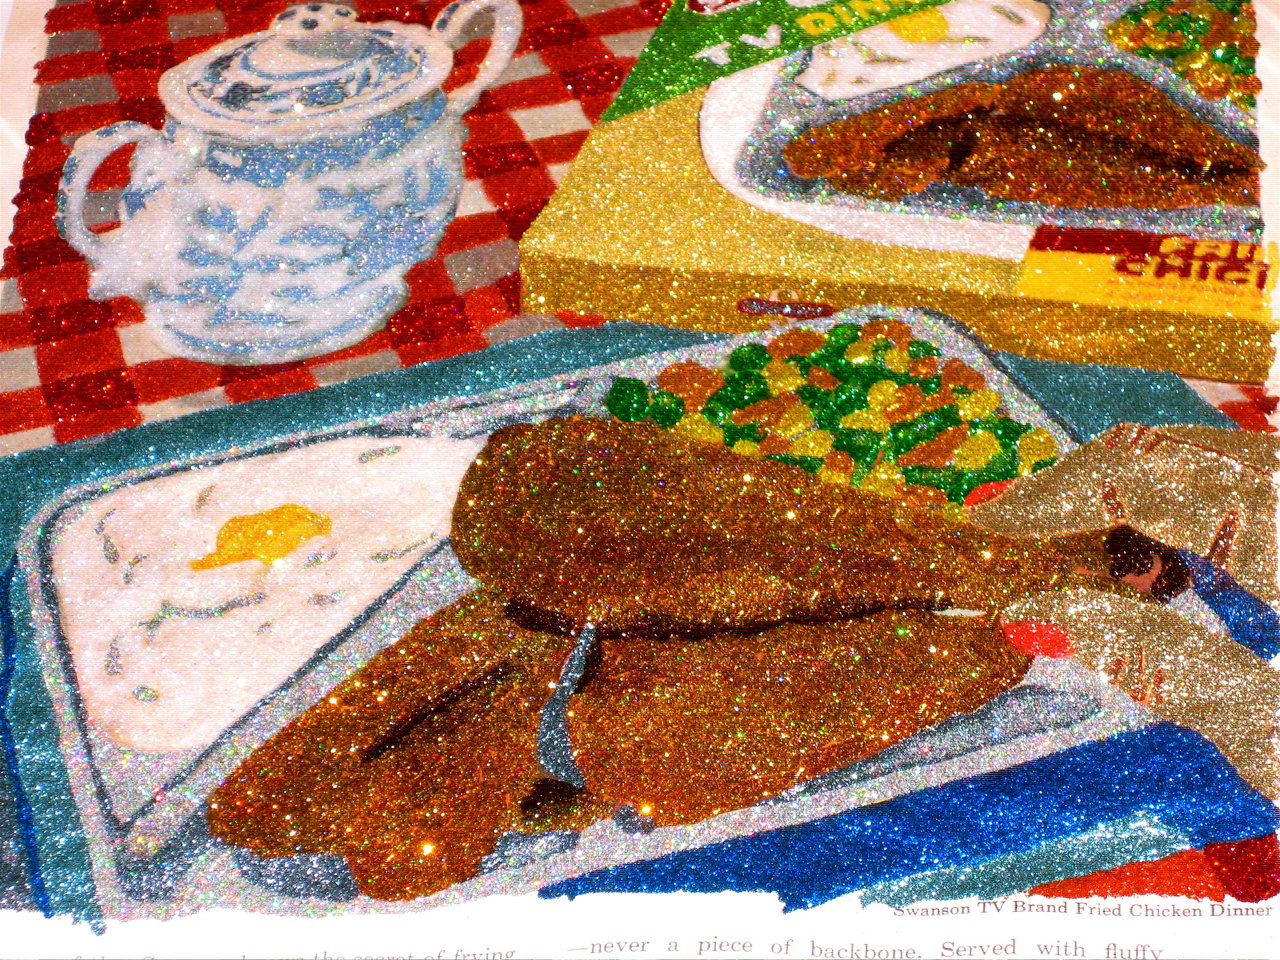 Glitter Pop Art TV Dinner Chicken